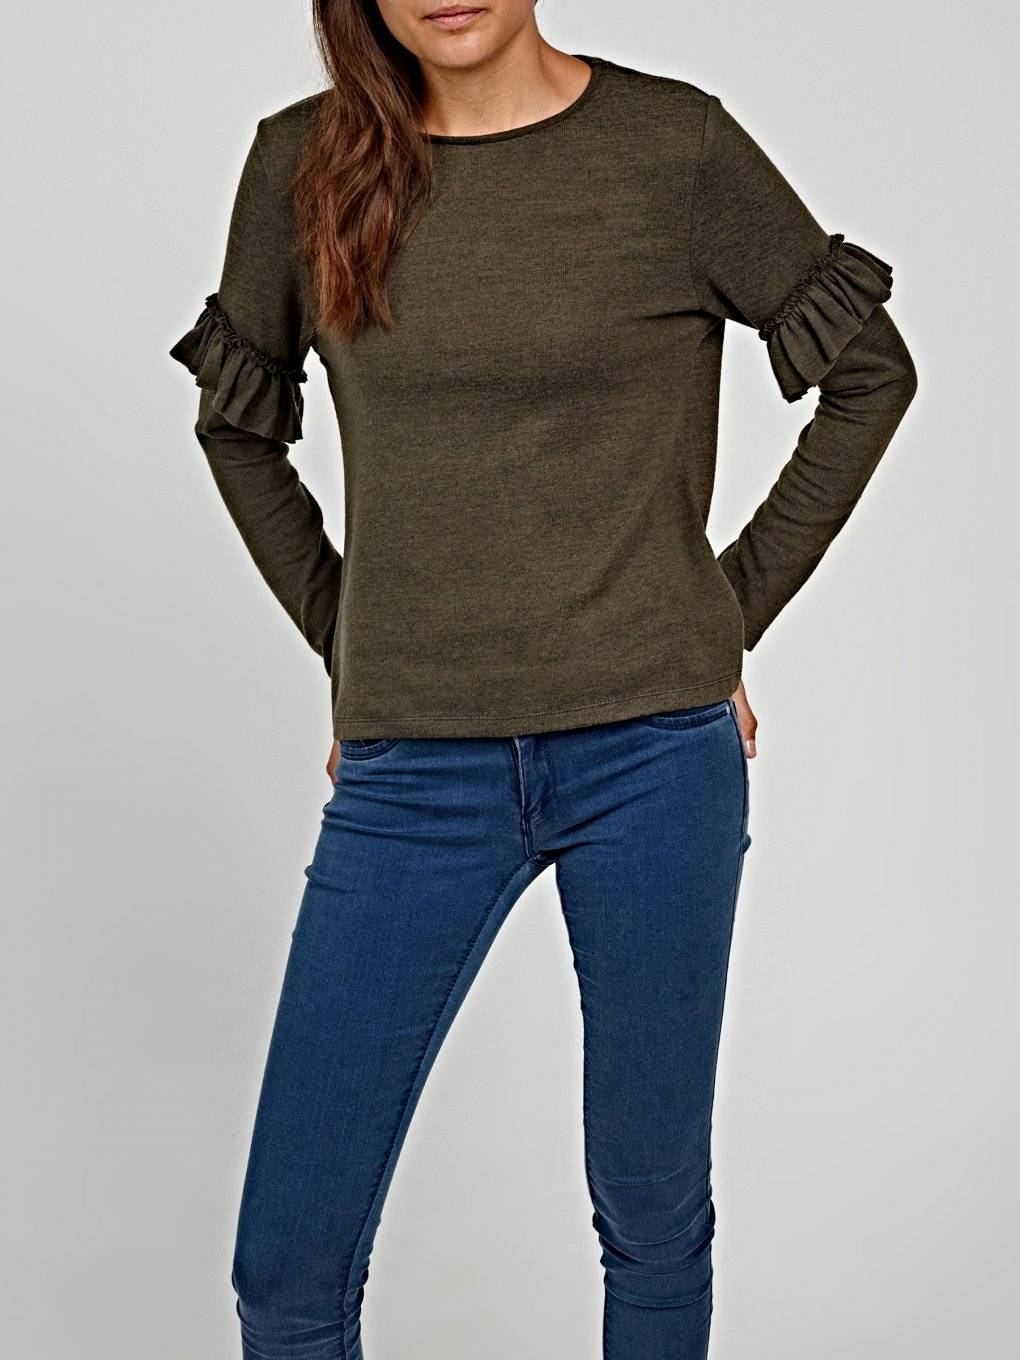 Jumper with ruffle sleeve detail